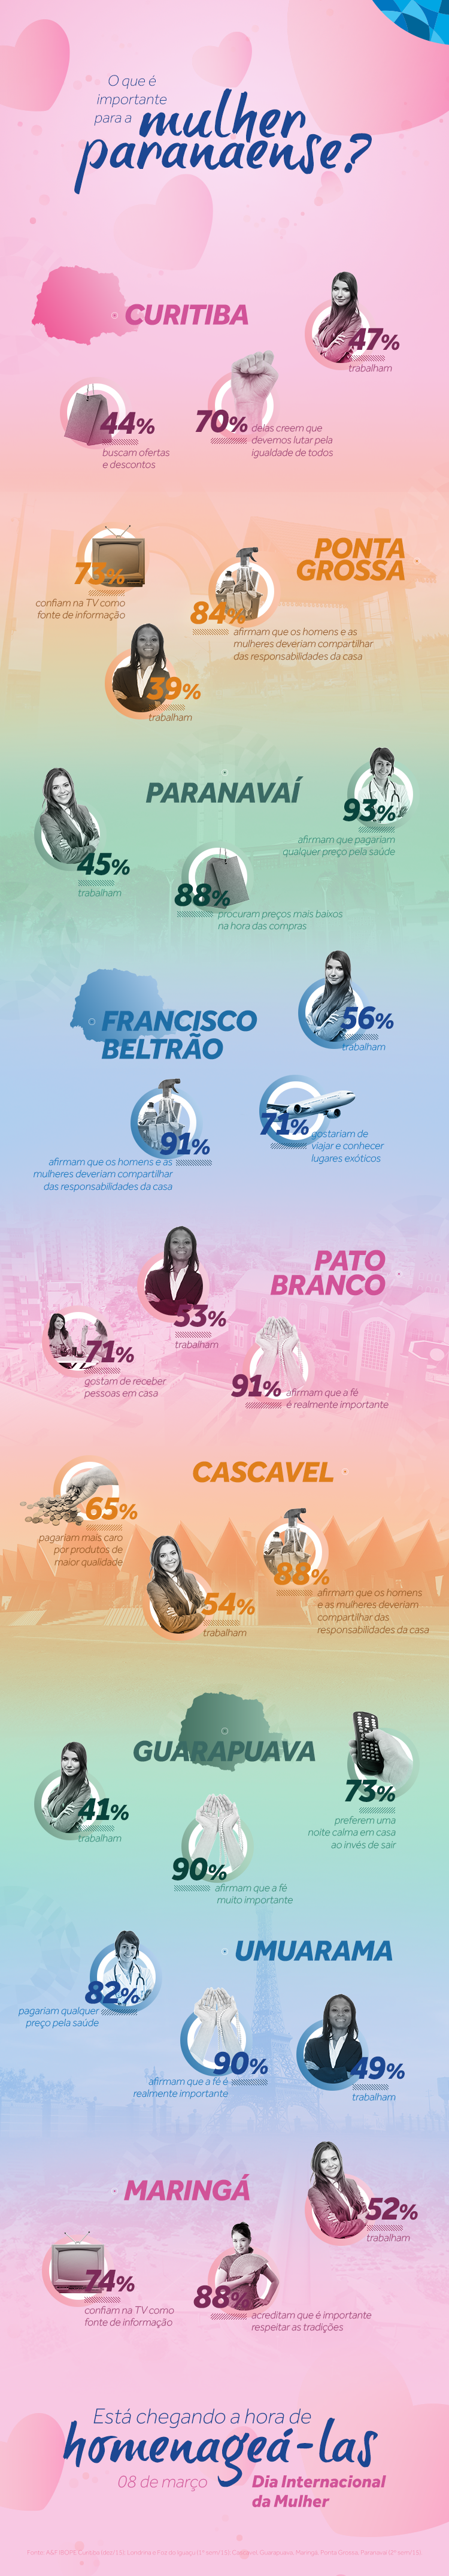 RPC Dia Internacional da Mulher infografico Parana